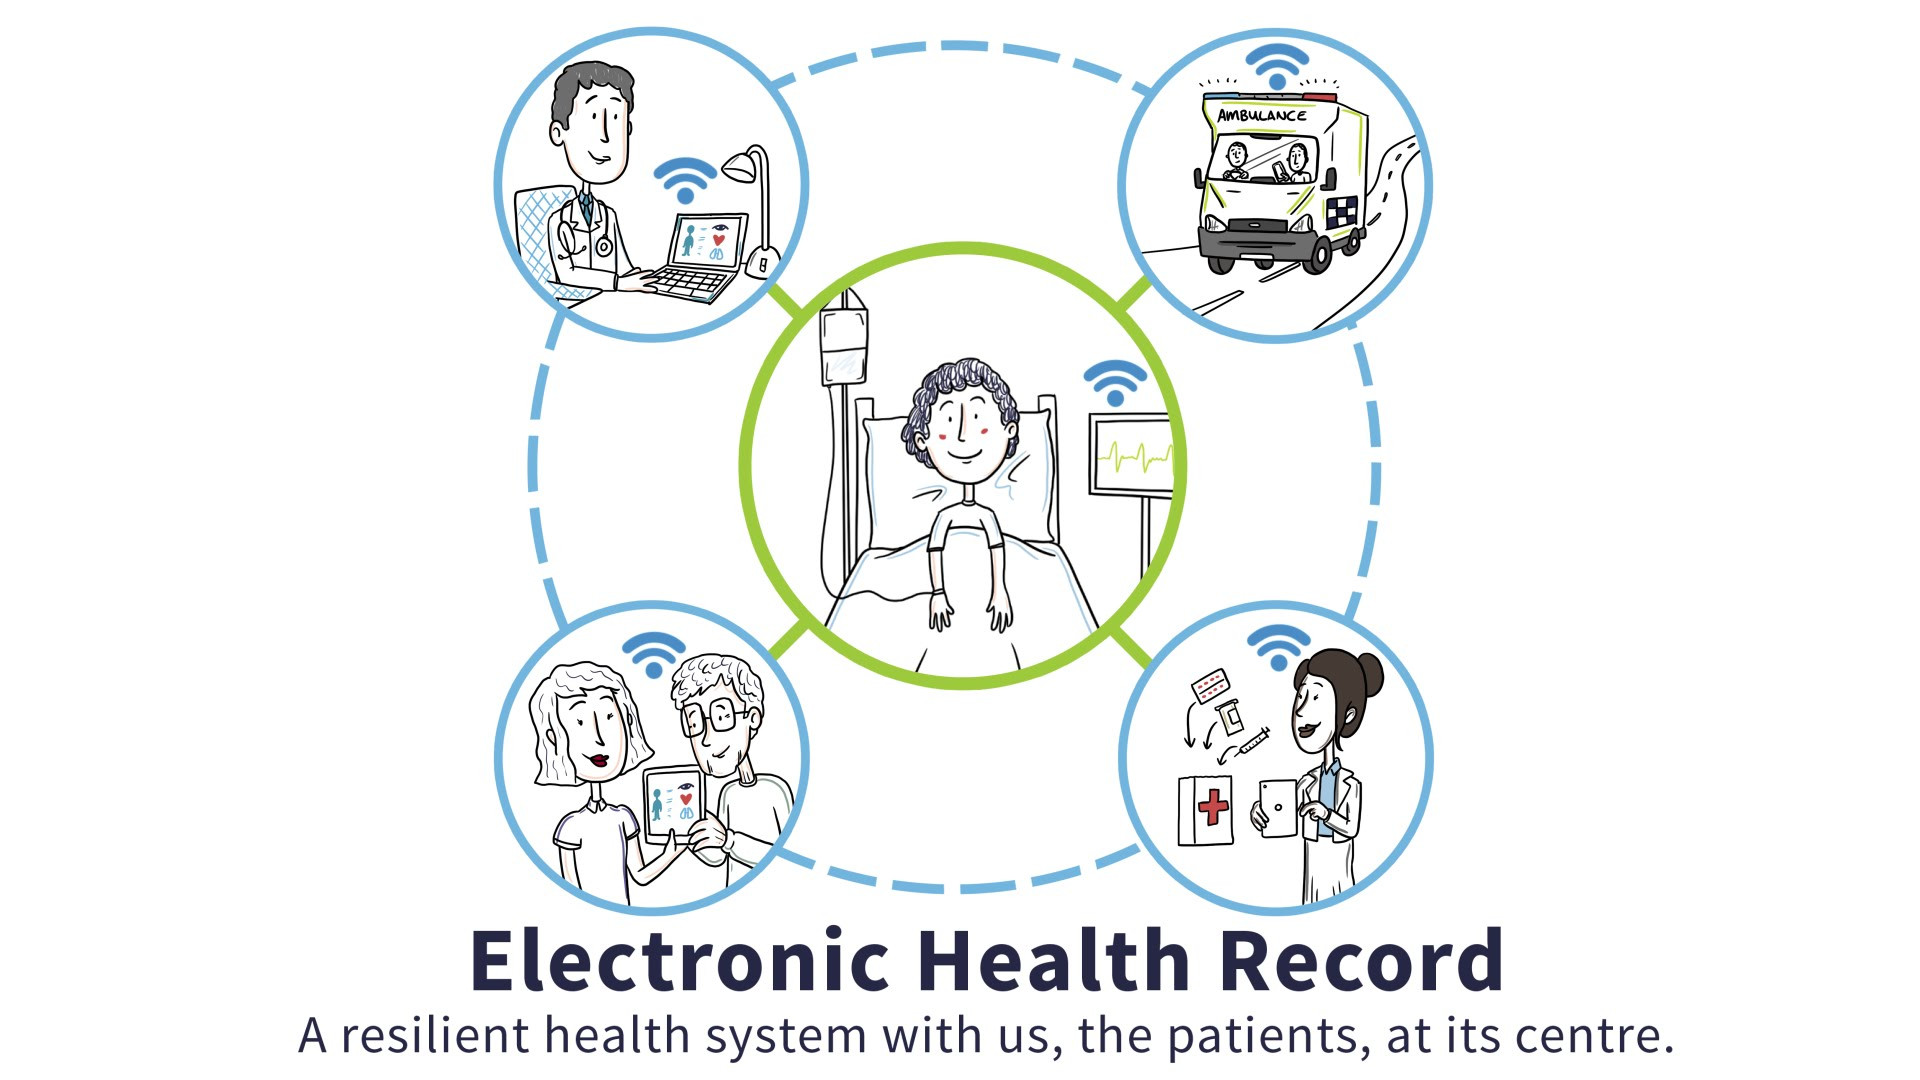 Electronic Health Record, EHR